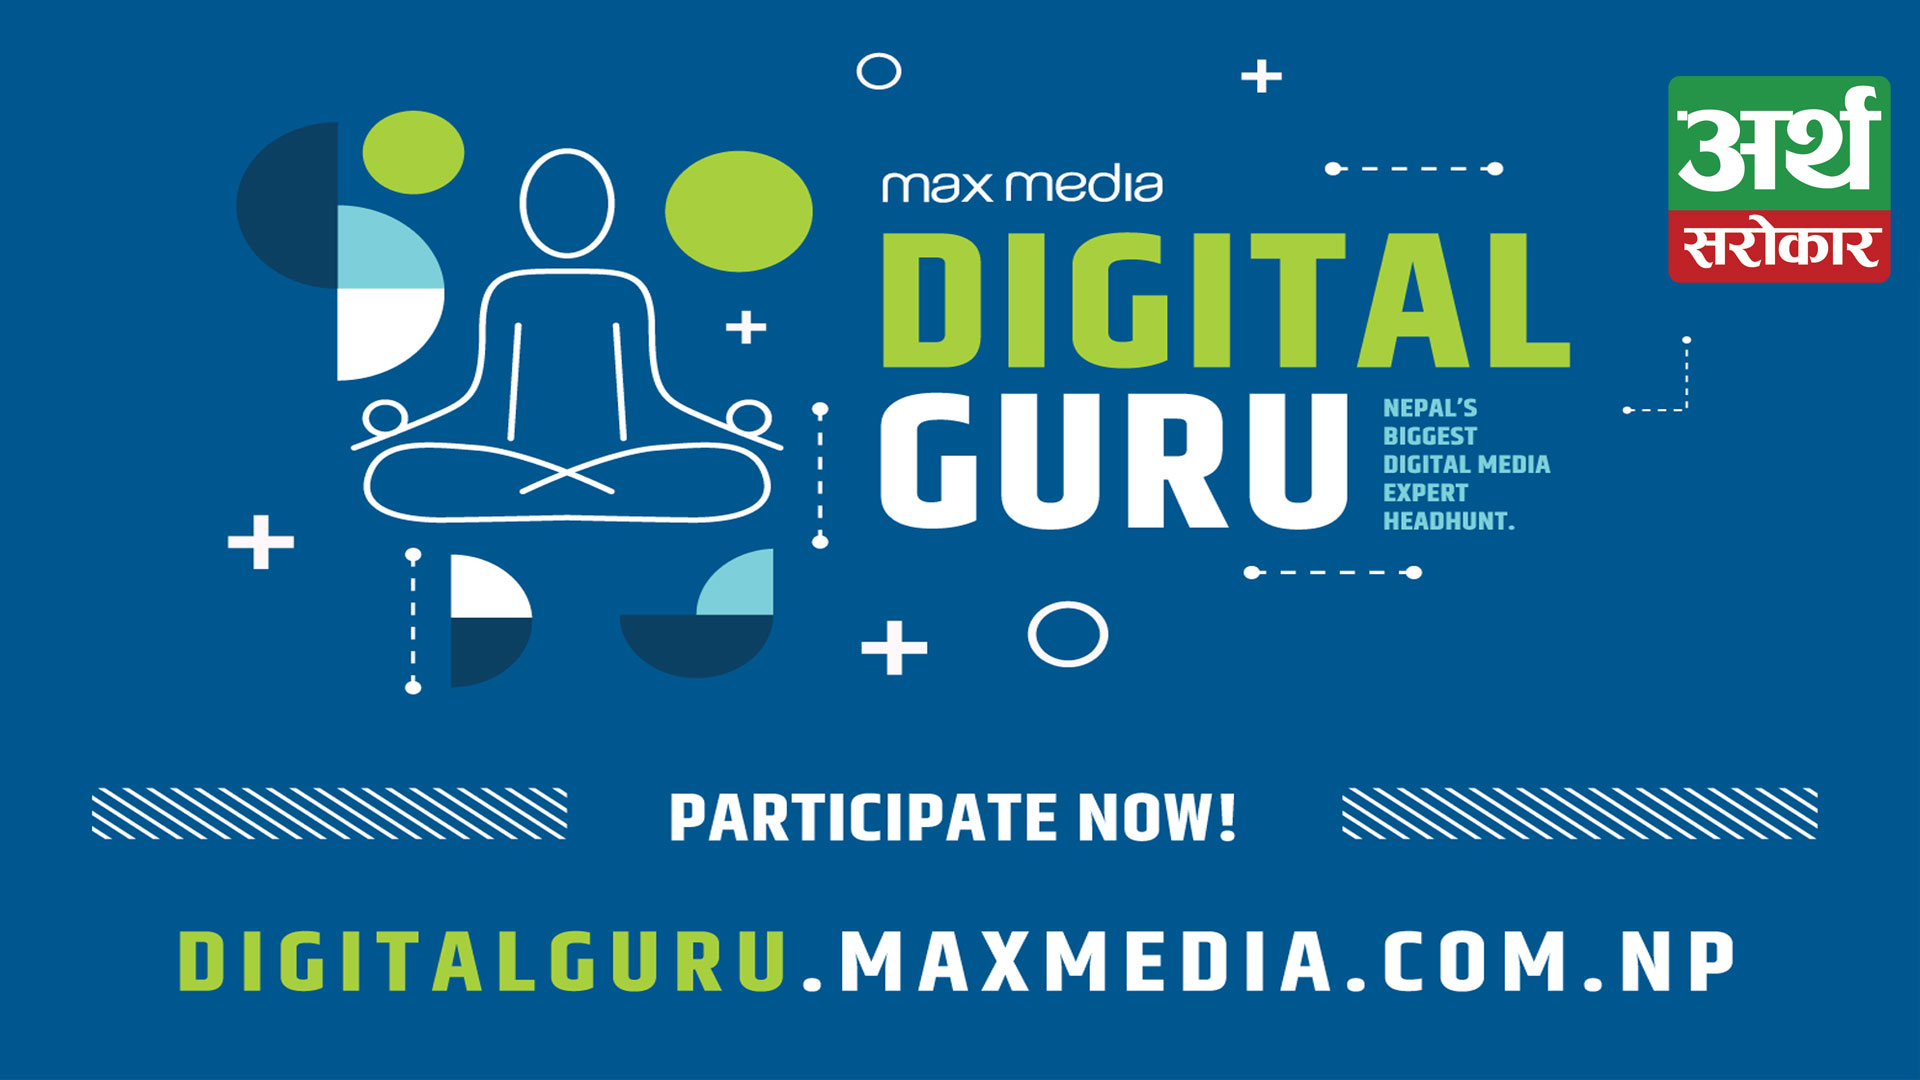 LAUNCH OF MAX MEDIA DIGITAL GURU COMPETITION, A Digital Expert Headhunt to find the best digital minds from Nepal